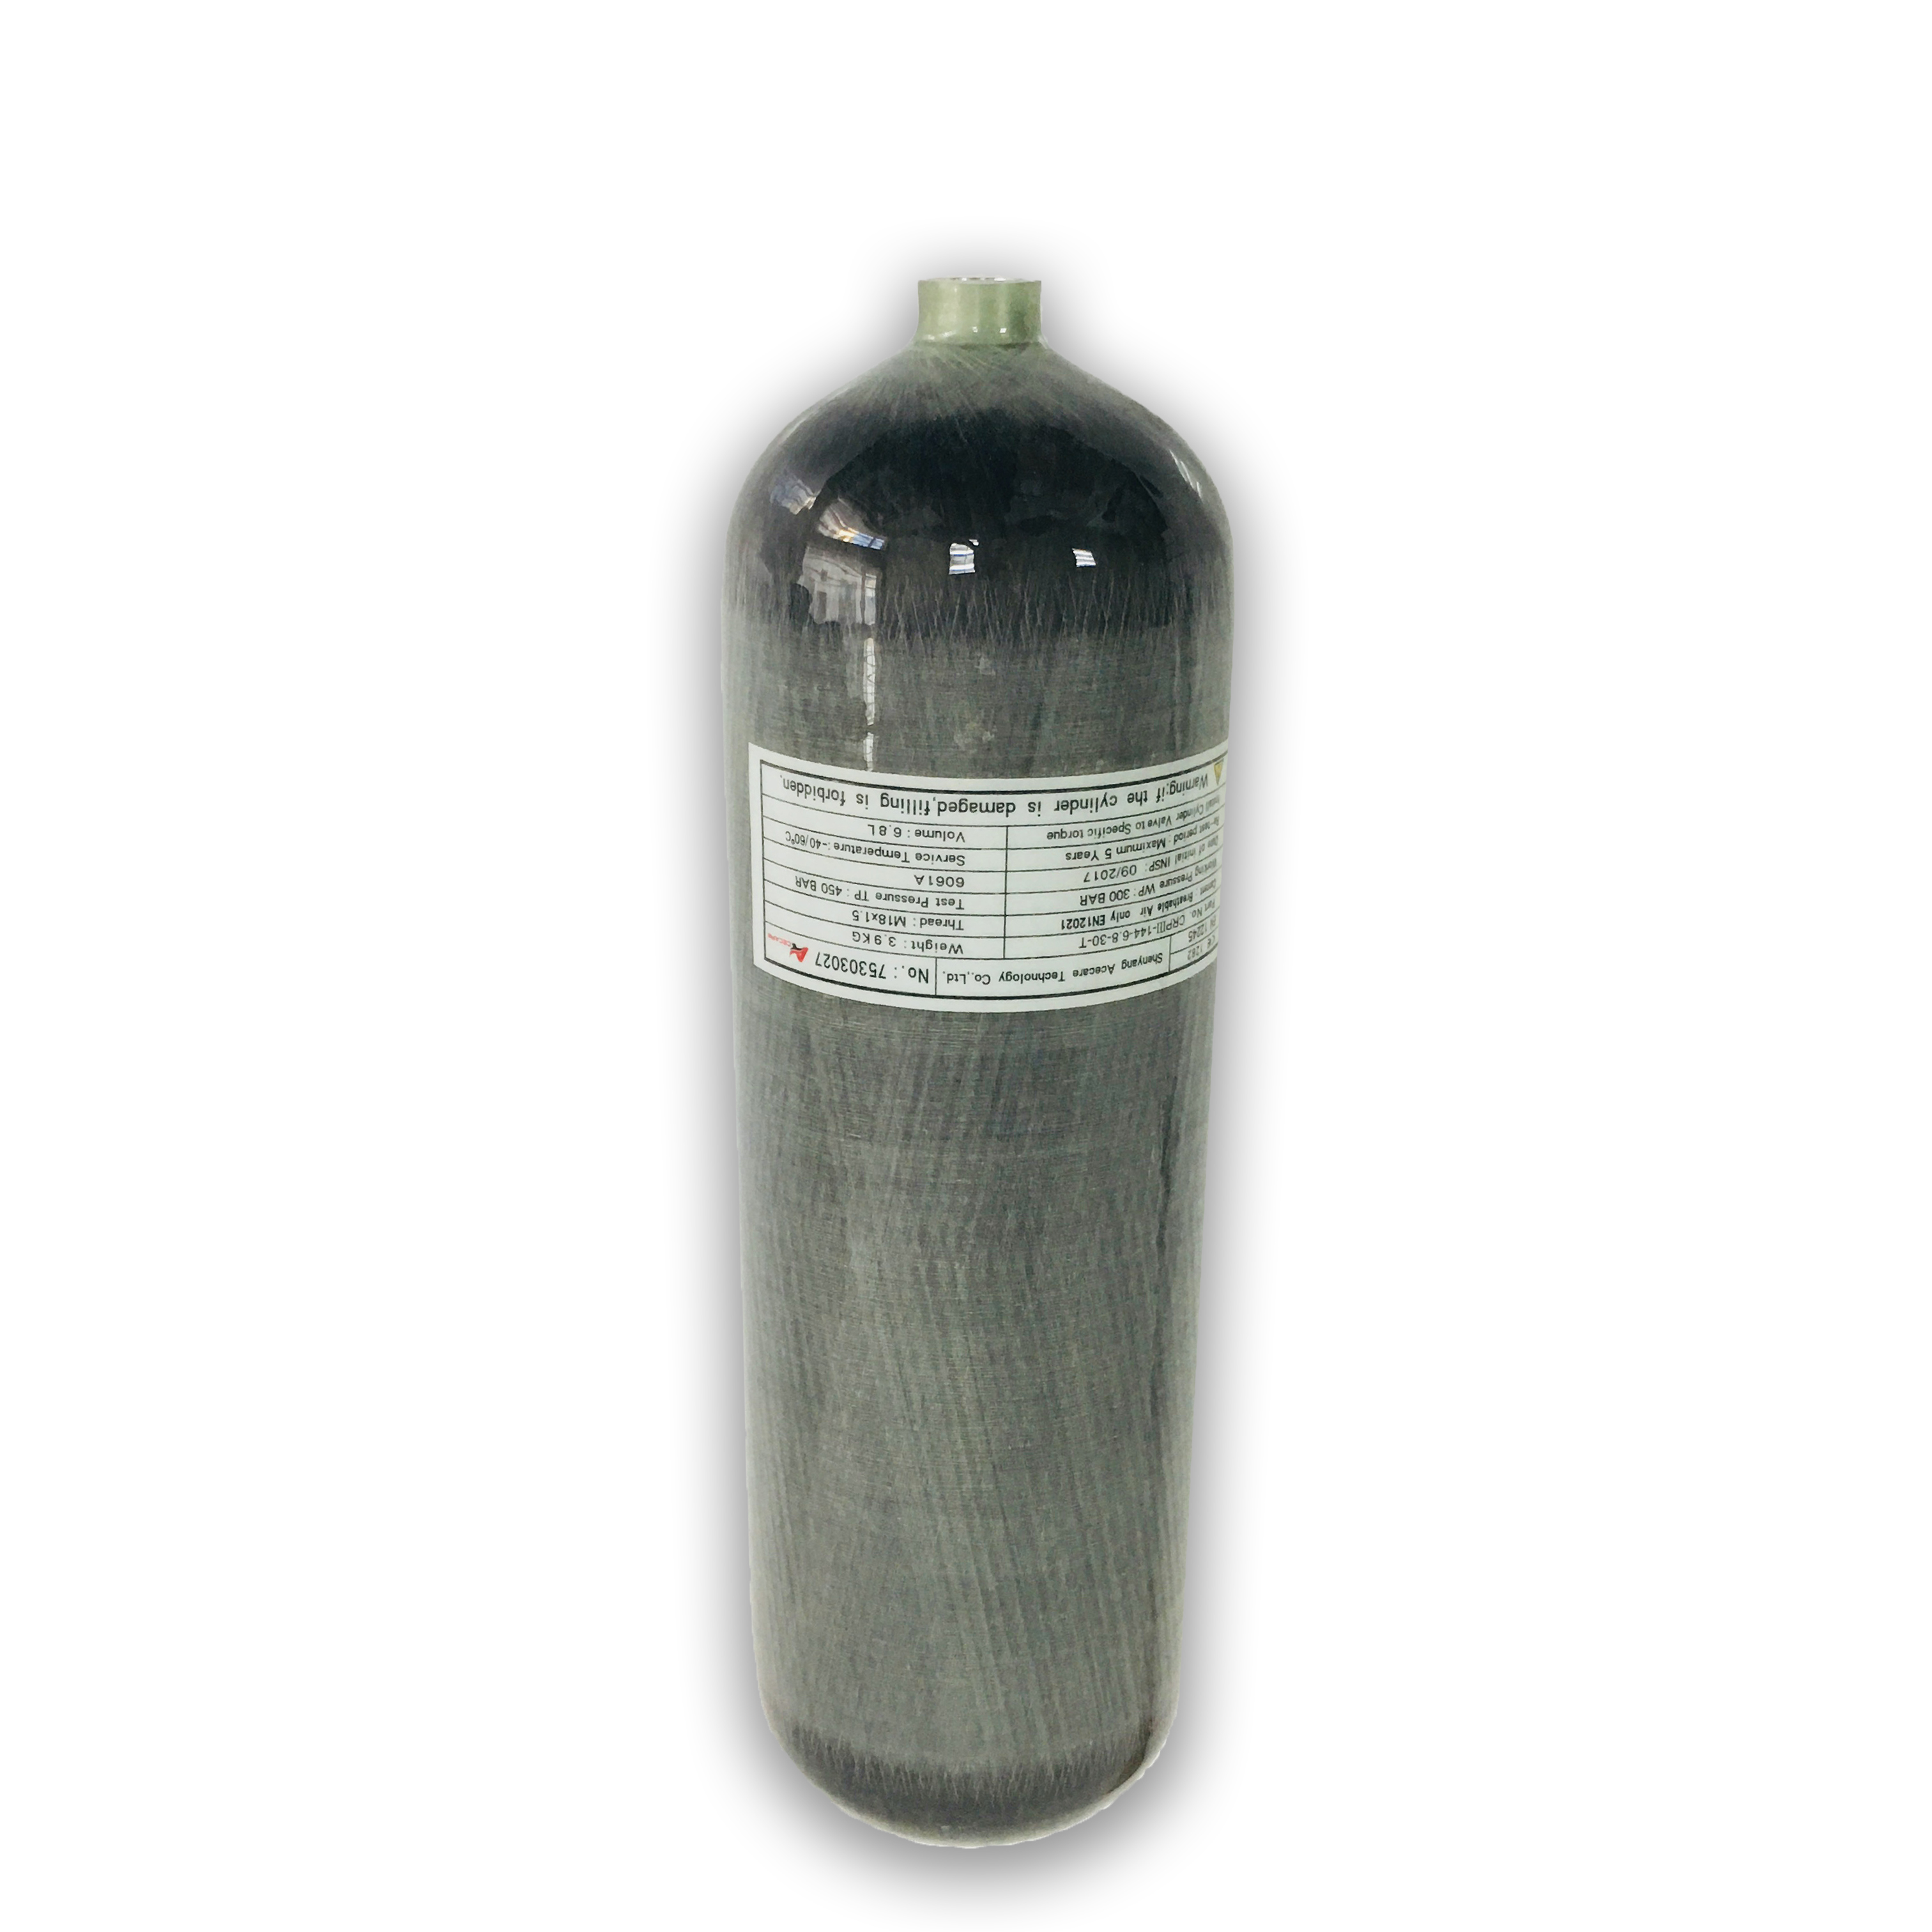 AC168 CE Certification 6.8L Air Cylinder 4500Psi 30Mpa High Pressure SCBA Tank 4500Psi Without Valve Drop Shipping Acecare-R